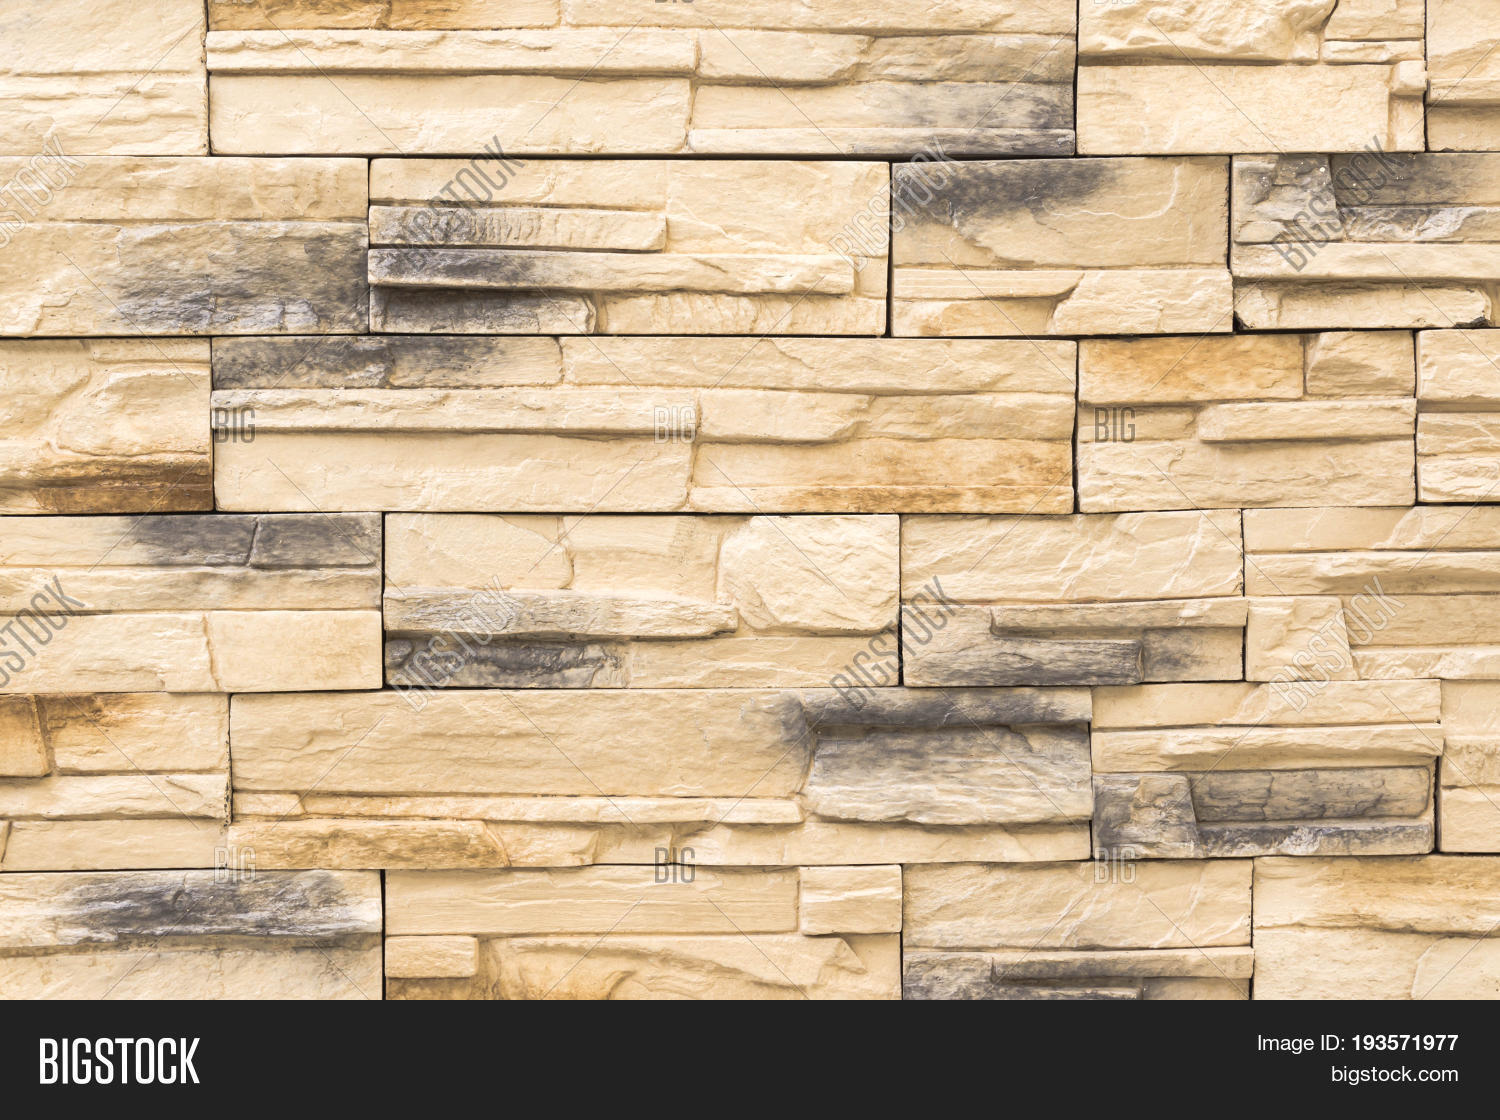 Old Brown Bricks Wall Image & Photo (Free Trial) | Bigstock